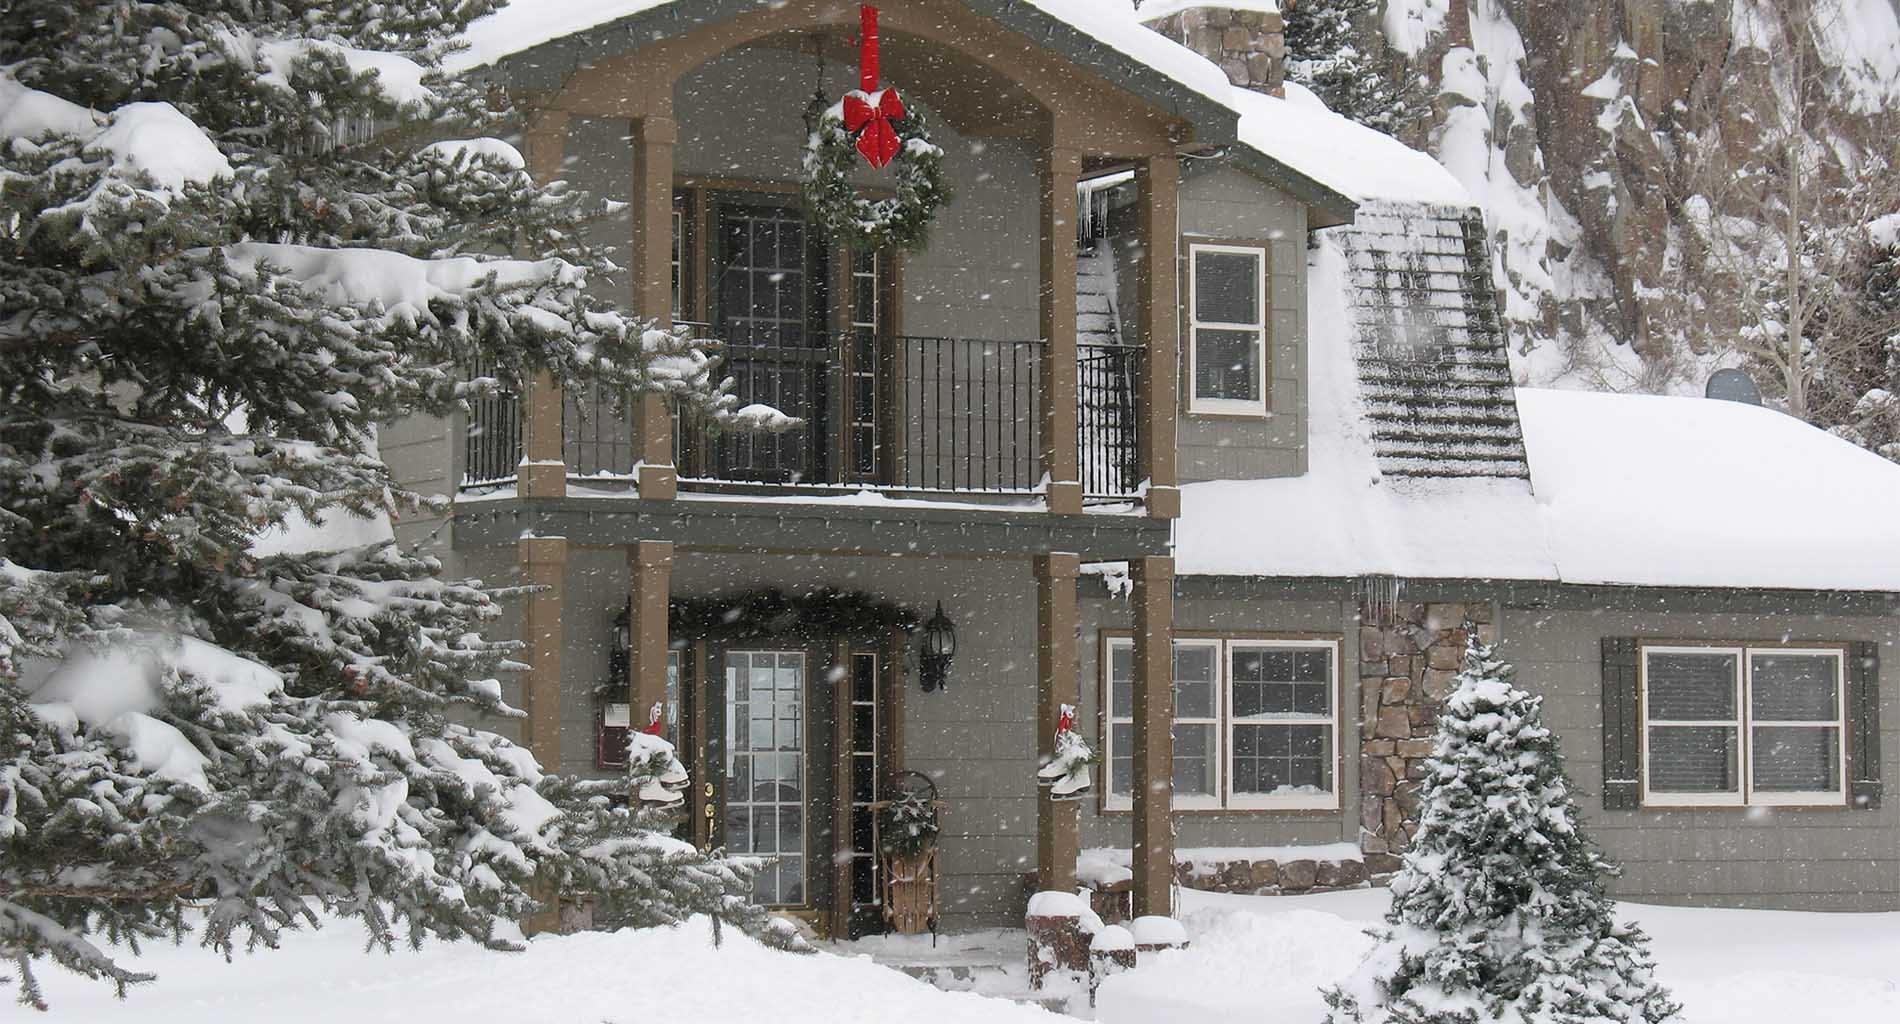 Front exterior of inn with snow drifts and falling snow, white ice skates, large Christmas wreath with big, red bow